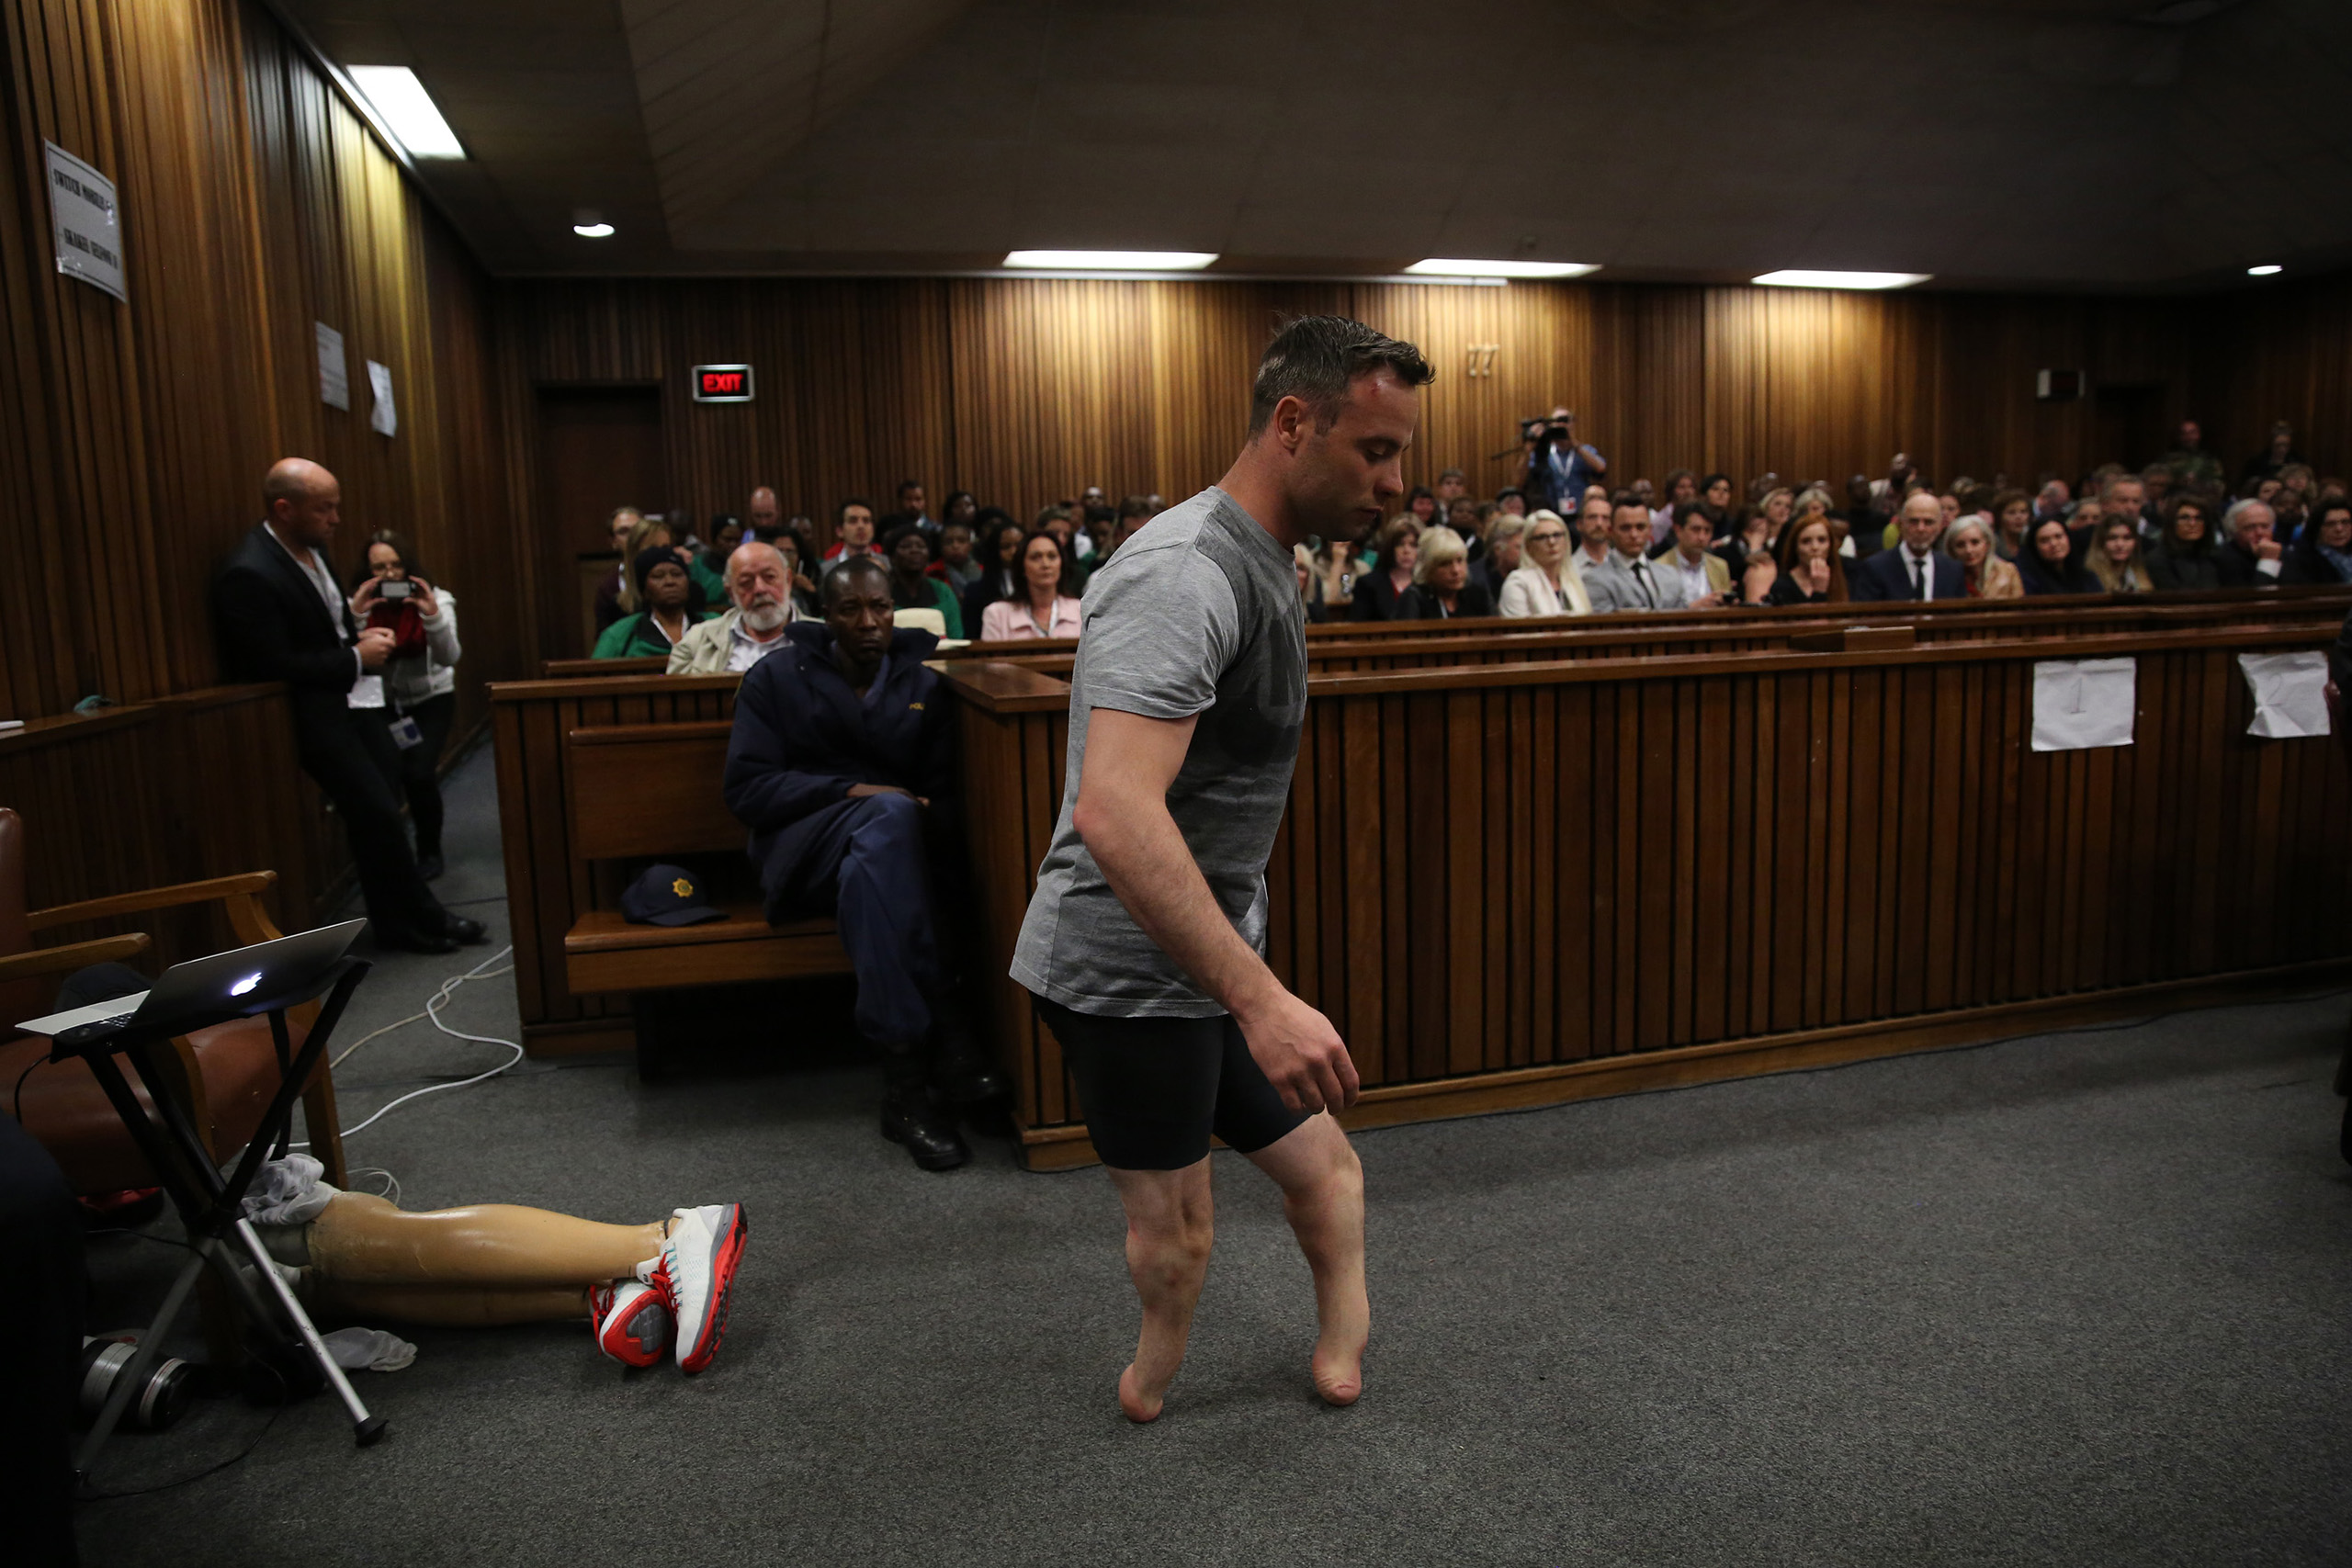 Paralympic gold medalist, Oscar Pistorius, prepares to walk across the courtroom without his prosthetic legs during the third day of his hearing at the Pretoria High Court for sentencing procedures in his murder trial in Pretoria on June 15, 2016.